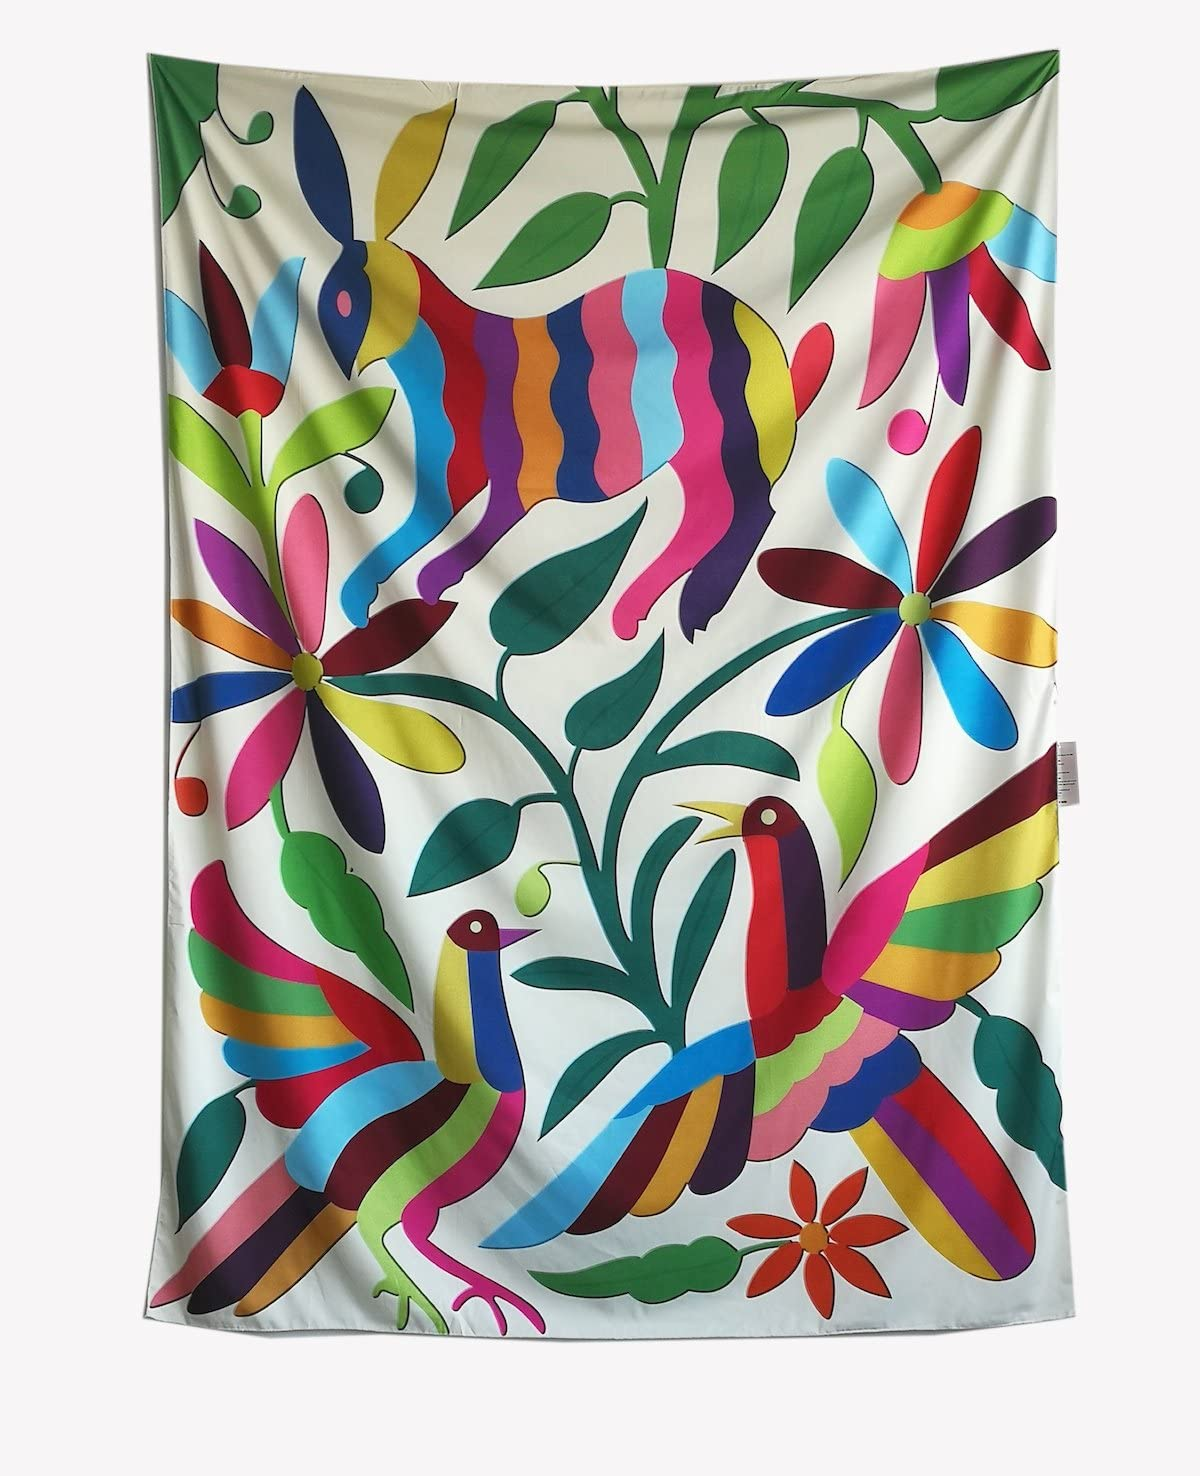 Otomi Rabbit Wall Tapestry Fabric Wallpaper Home Decor,60x 80,Twin Size